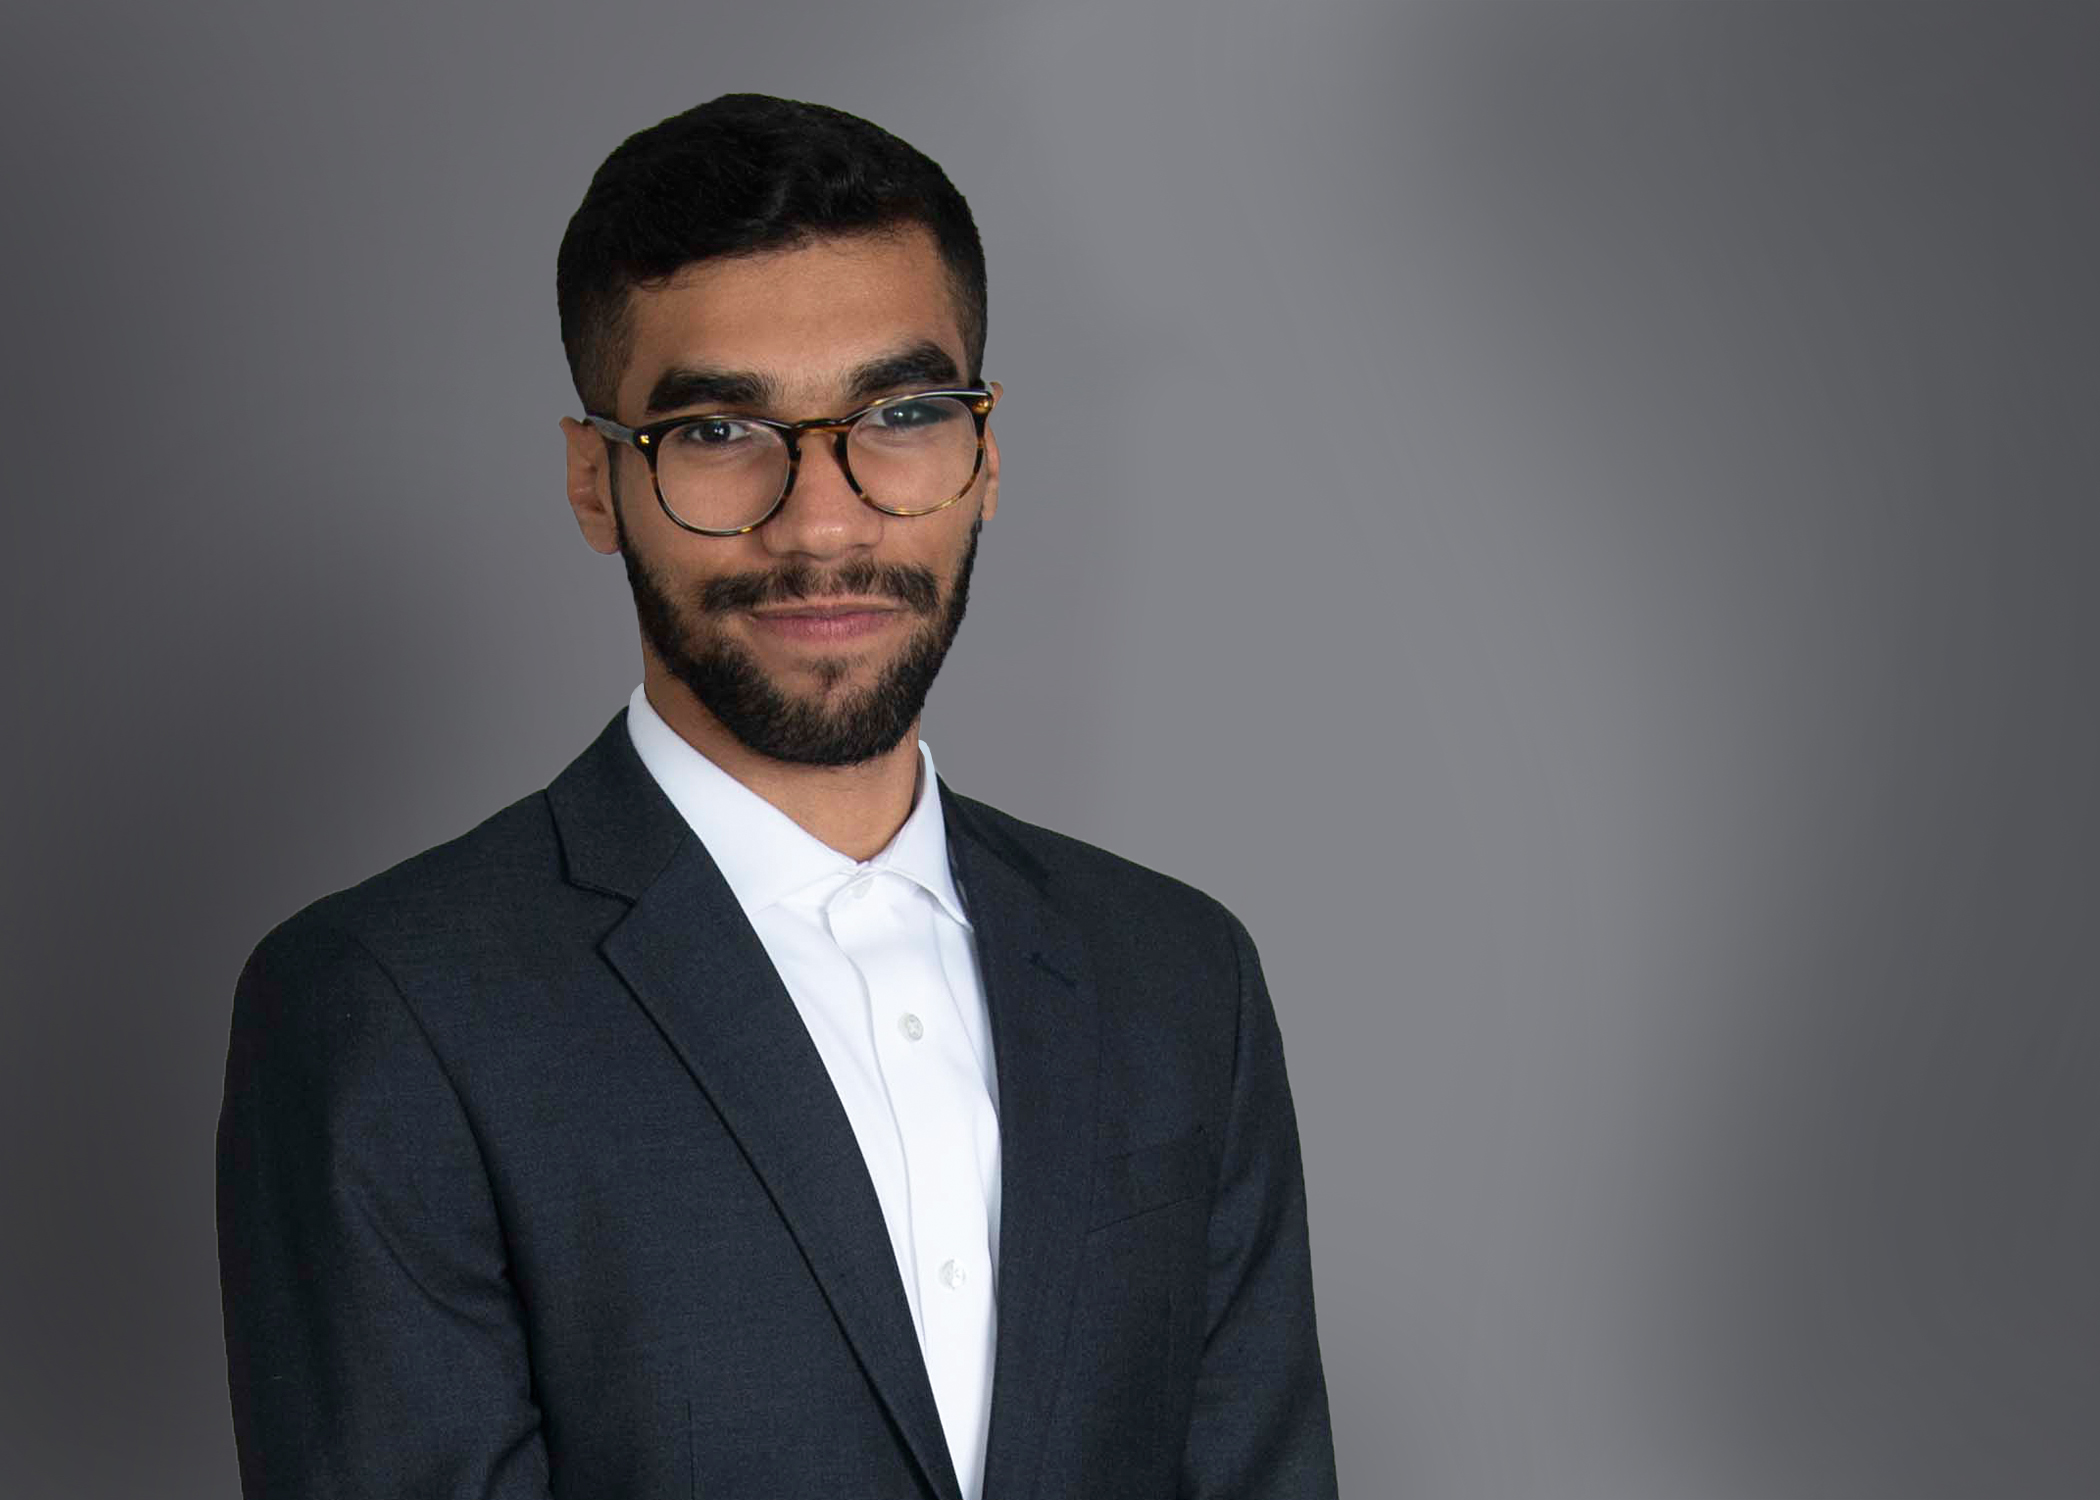 Mohammed Al Haji - TitleEngineering DesignerEducationB.S., Civil Engineering,Arizona State University,Tempe, Arizona, December 2018Words that best describe youPassionate, Enthusiastic , CaringEmailmalhaji@y2keng.com